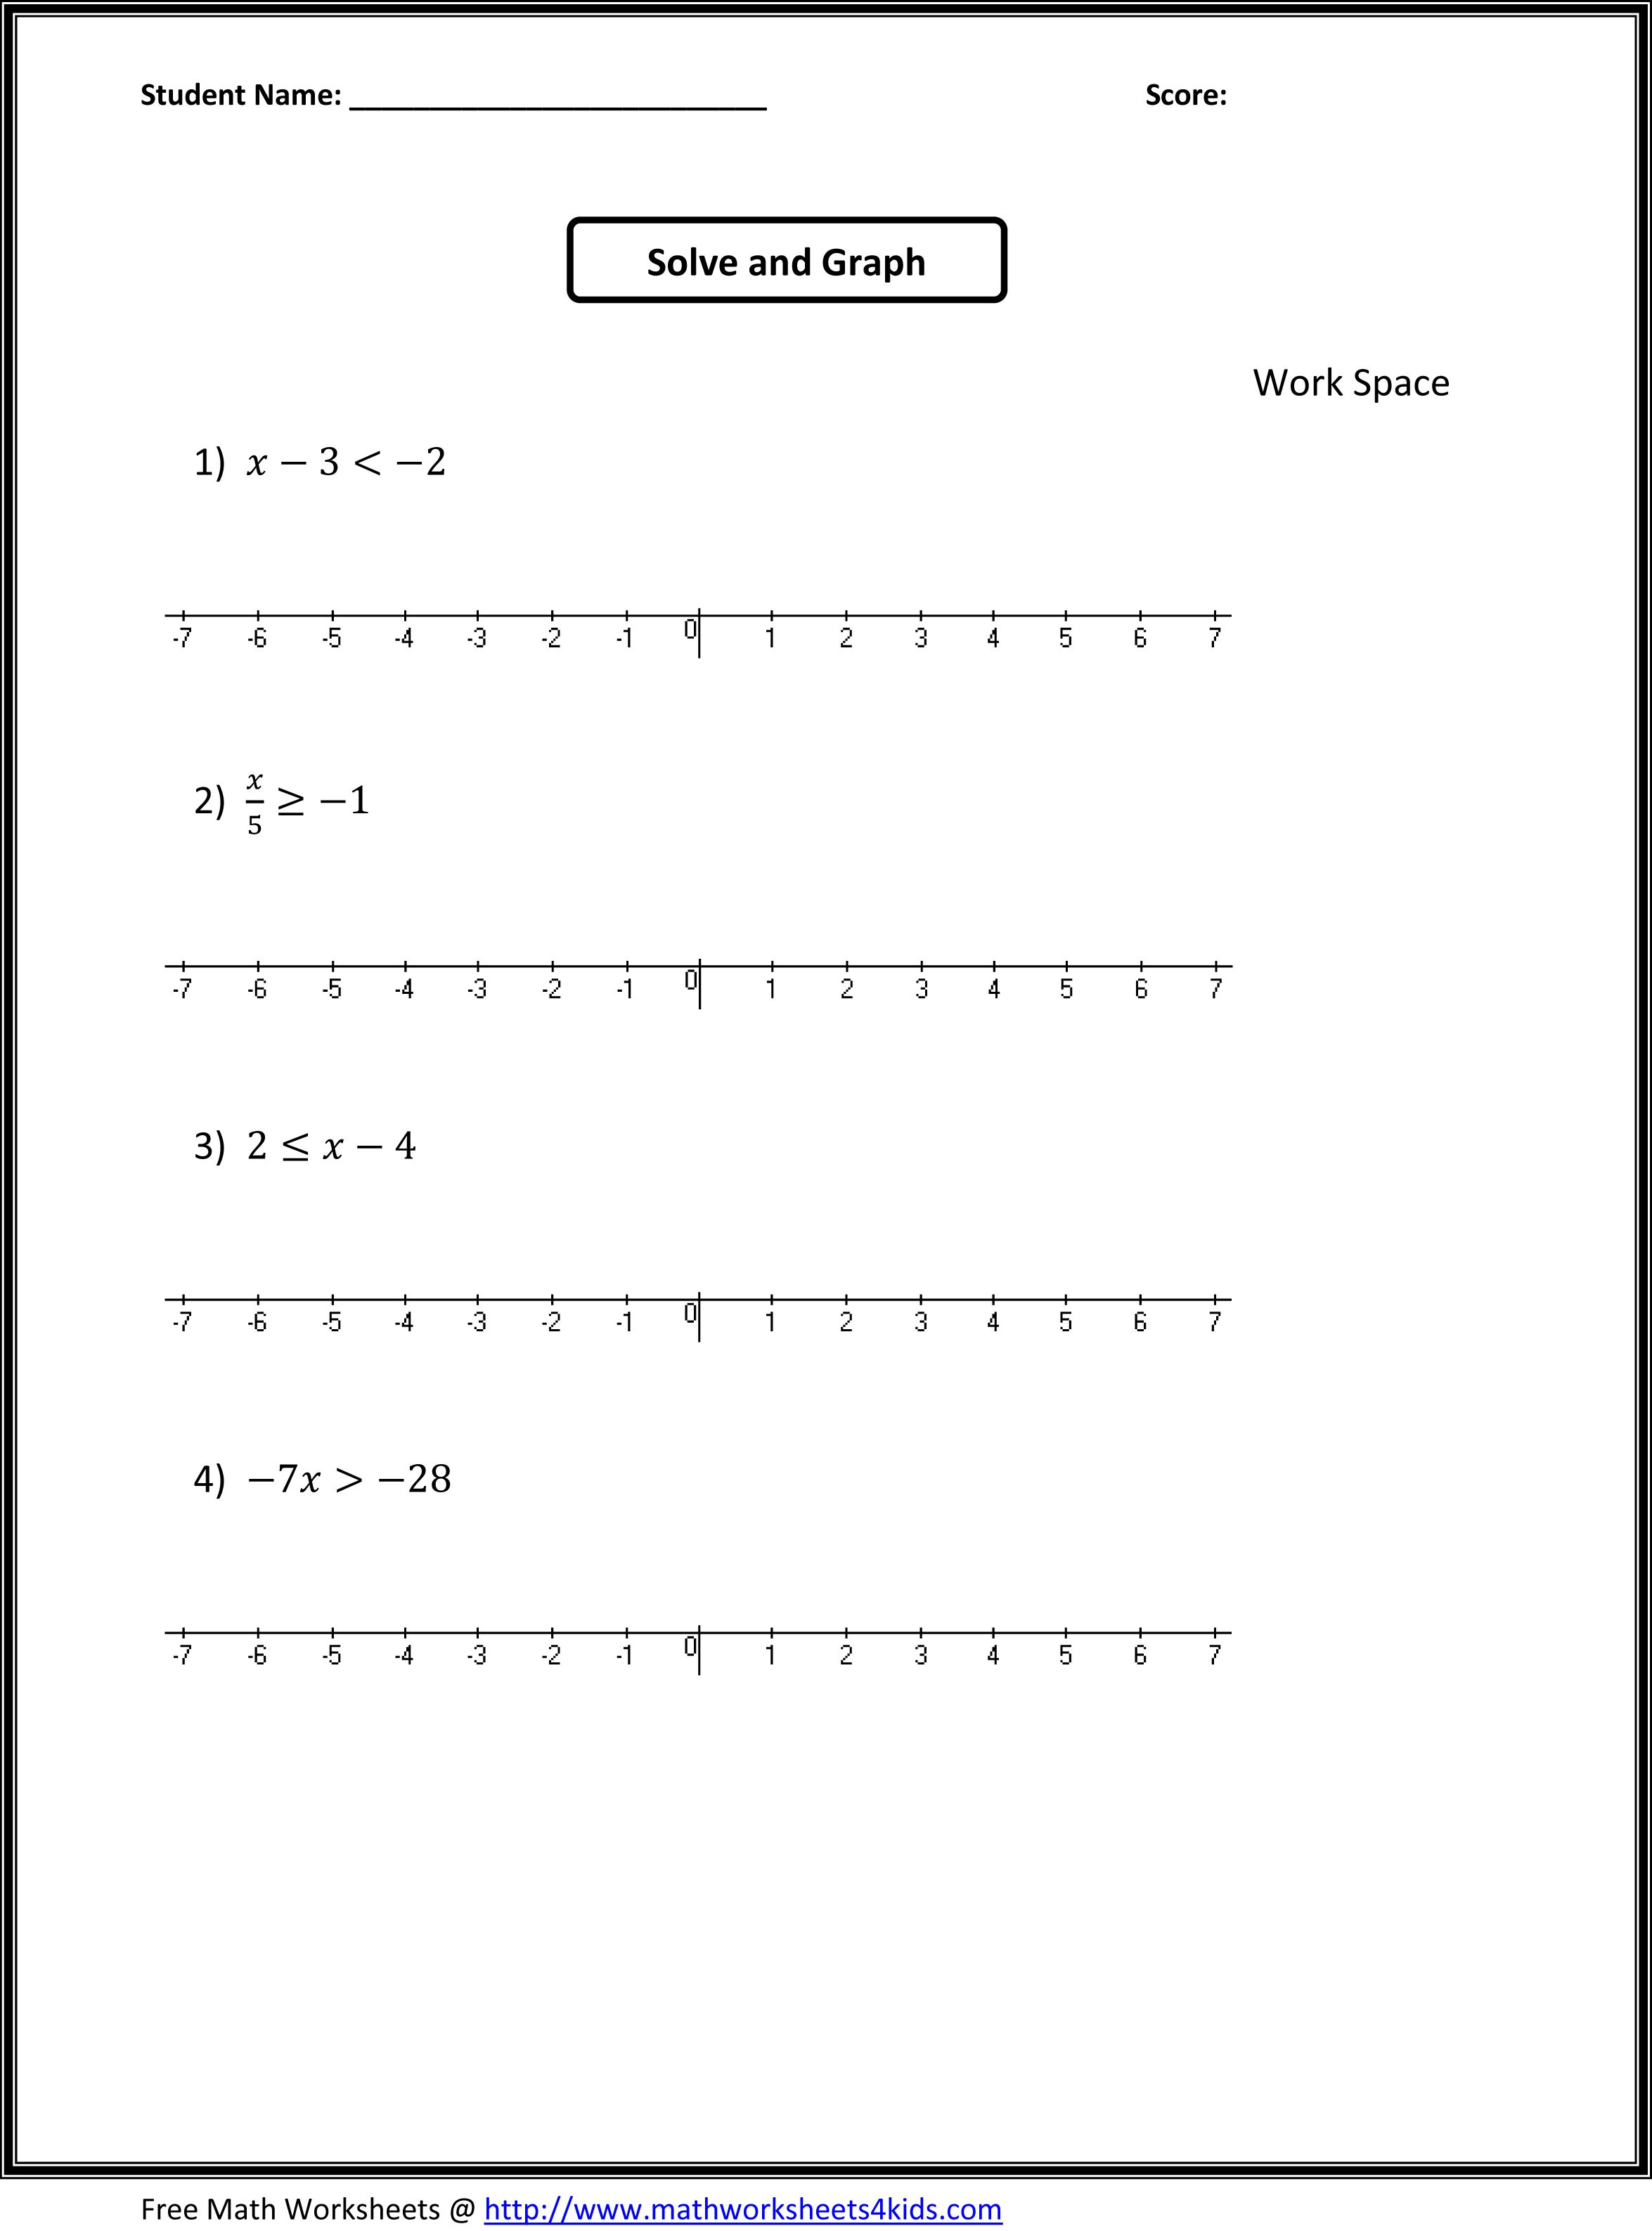 Worksheet Printable 7th Grade Math Worksheets 1000 images about math on pinterest activities printable worksheets and algebra worksheets